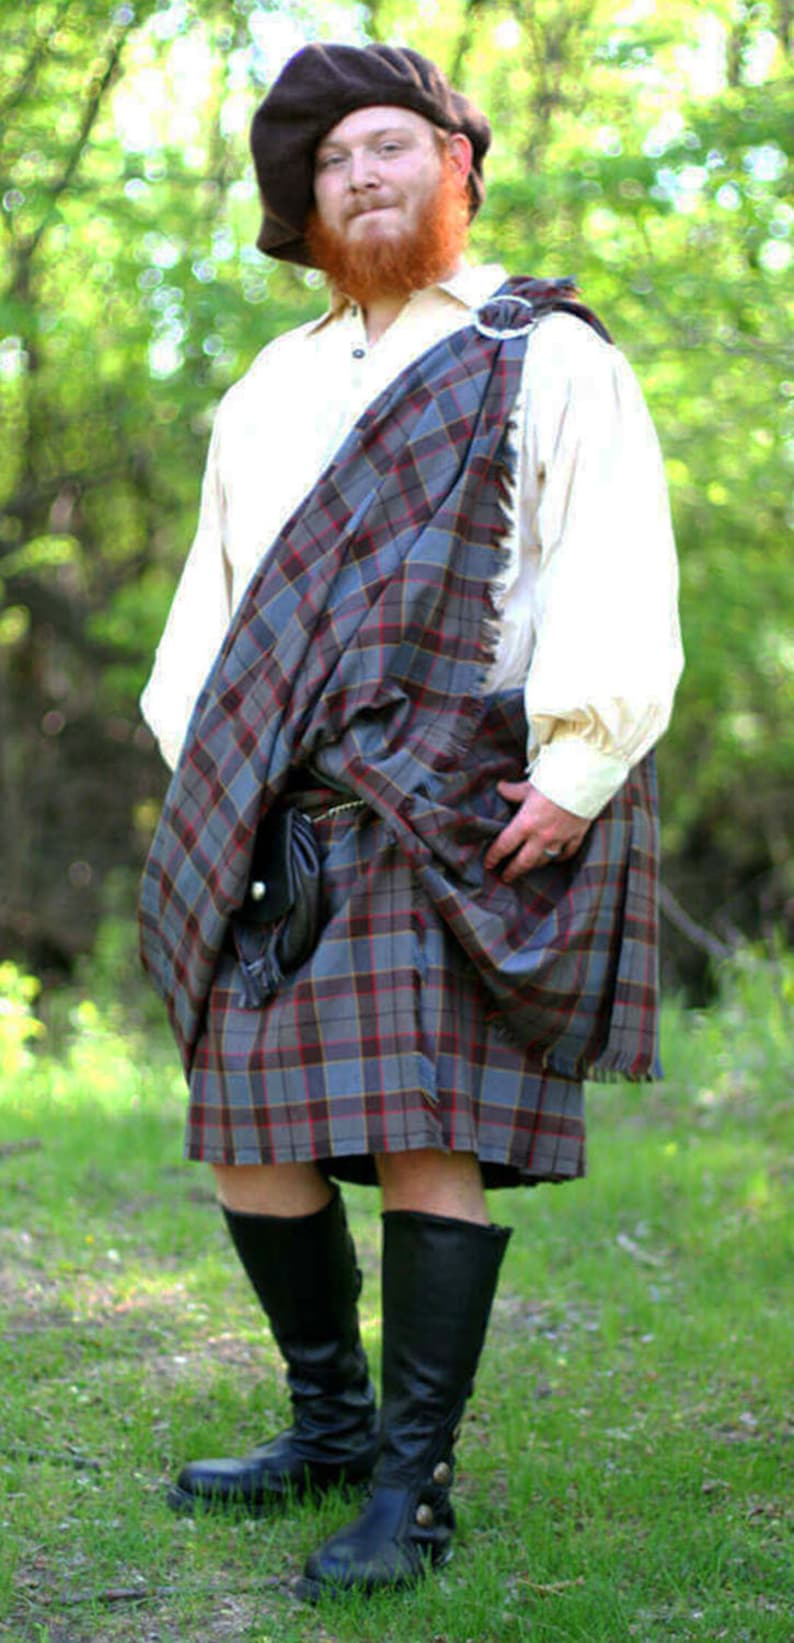 Official OUTLANDER Tartan Kilt - OUTLANDER Great Kilt Made in the USA